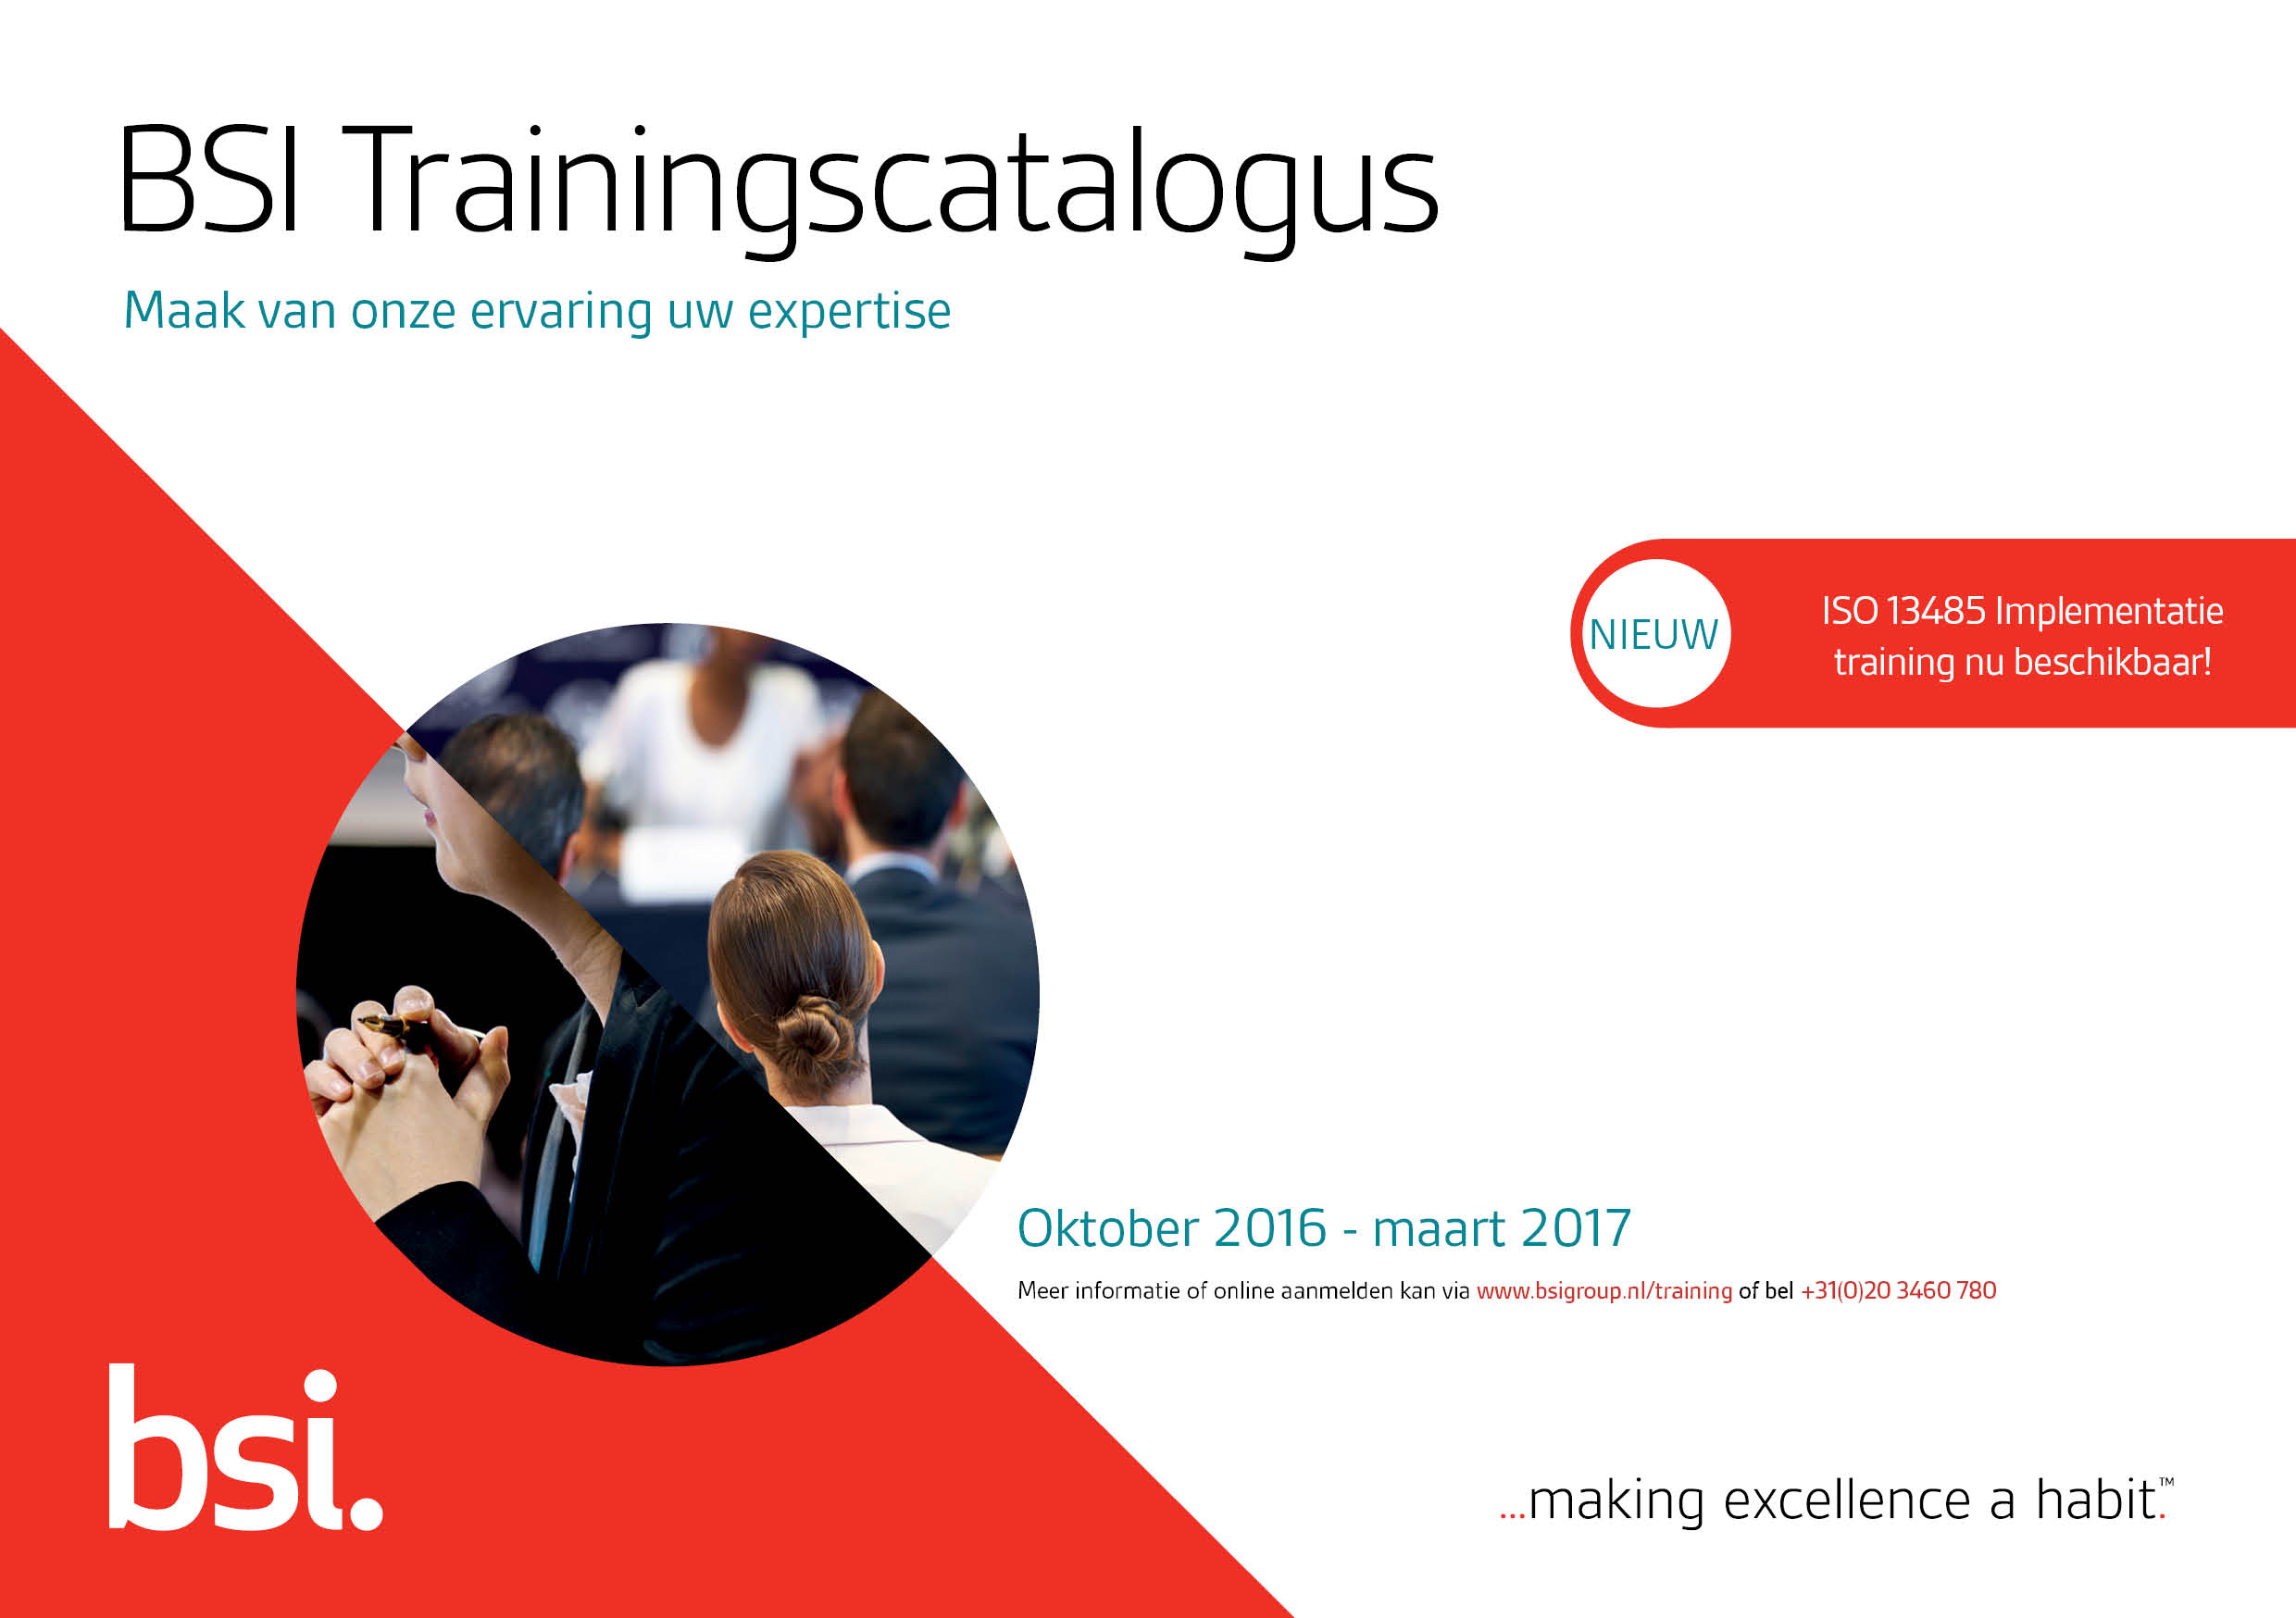 Trainingscatalogus 2016